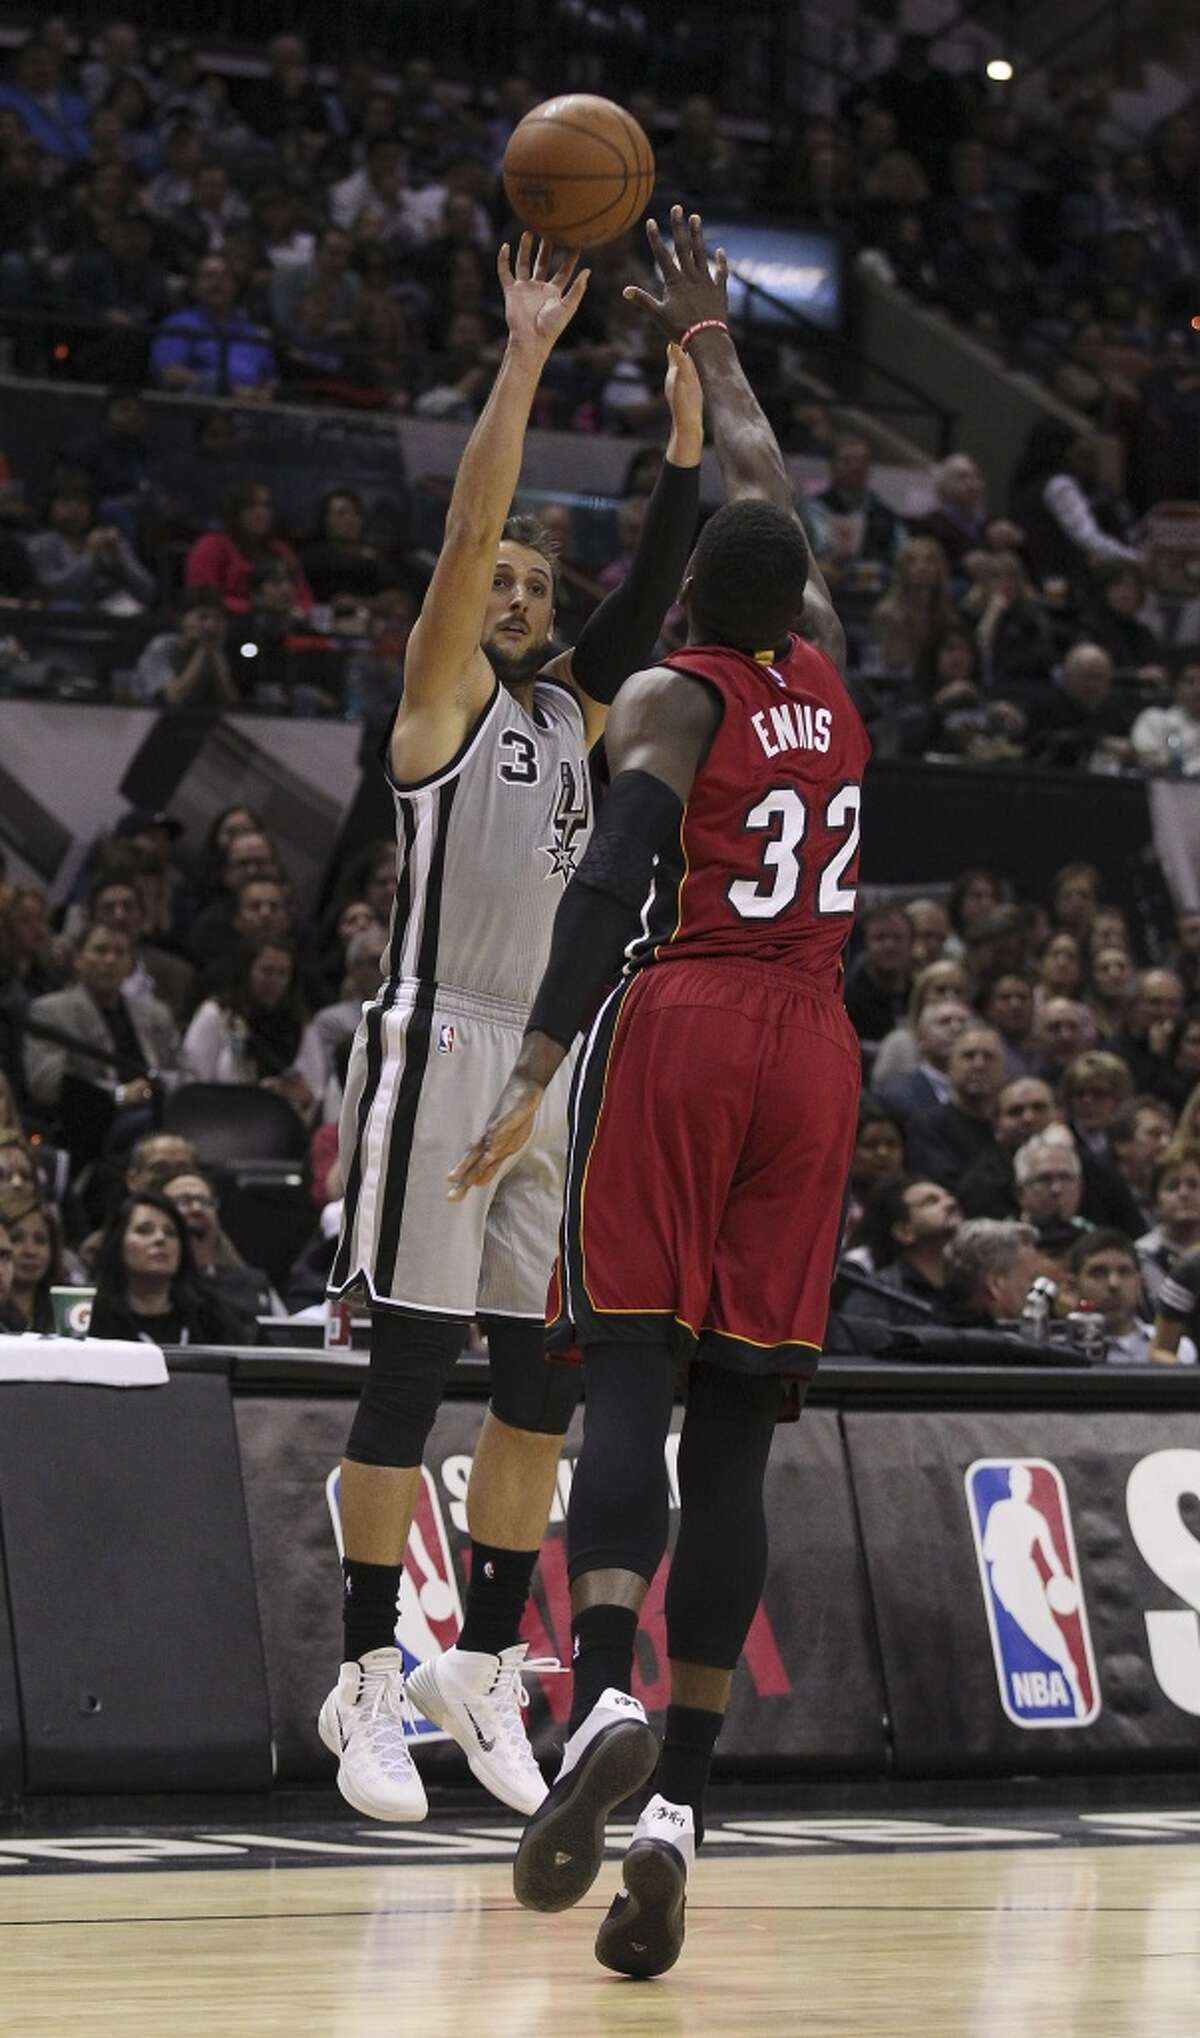 Spurs' Marco Belinelli (03) attempts a three against Miami Heat's James Ennis (32) at the AT&T Center on Friday, Feb. 6, 2015. (Kin Man Hui/San Antonio Express-News)